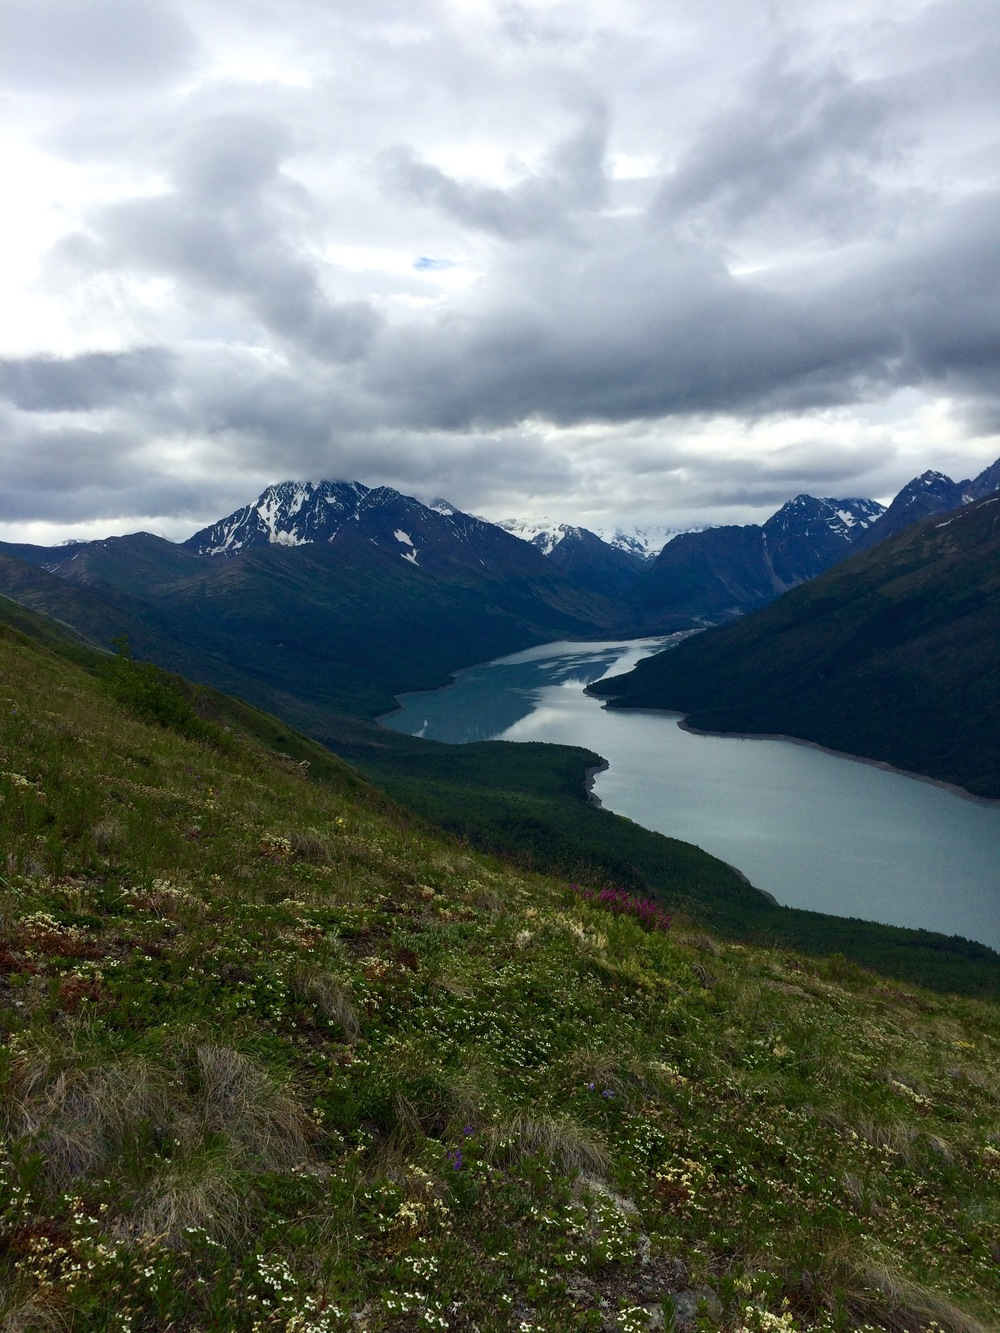 Eklutna Lake from the climb up the Twin Peaks Trail. Photo by K. Strong.